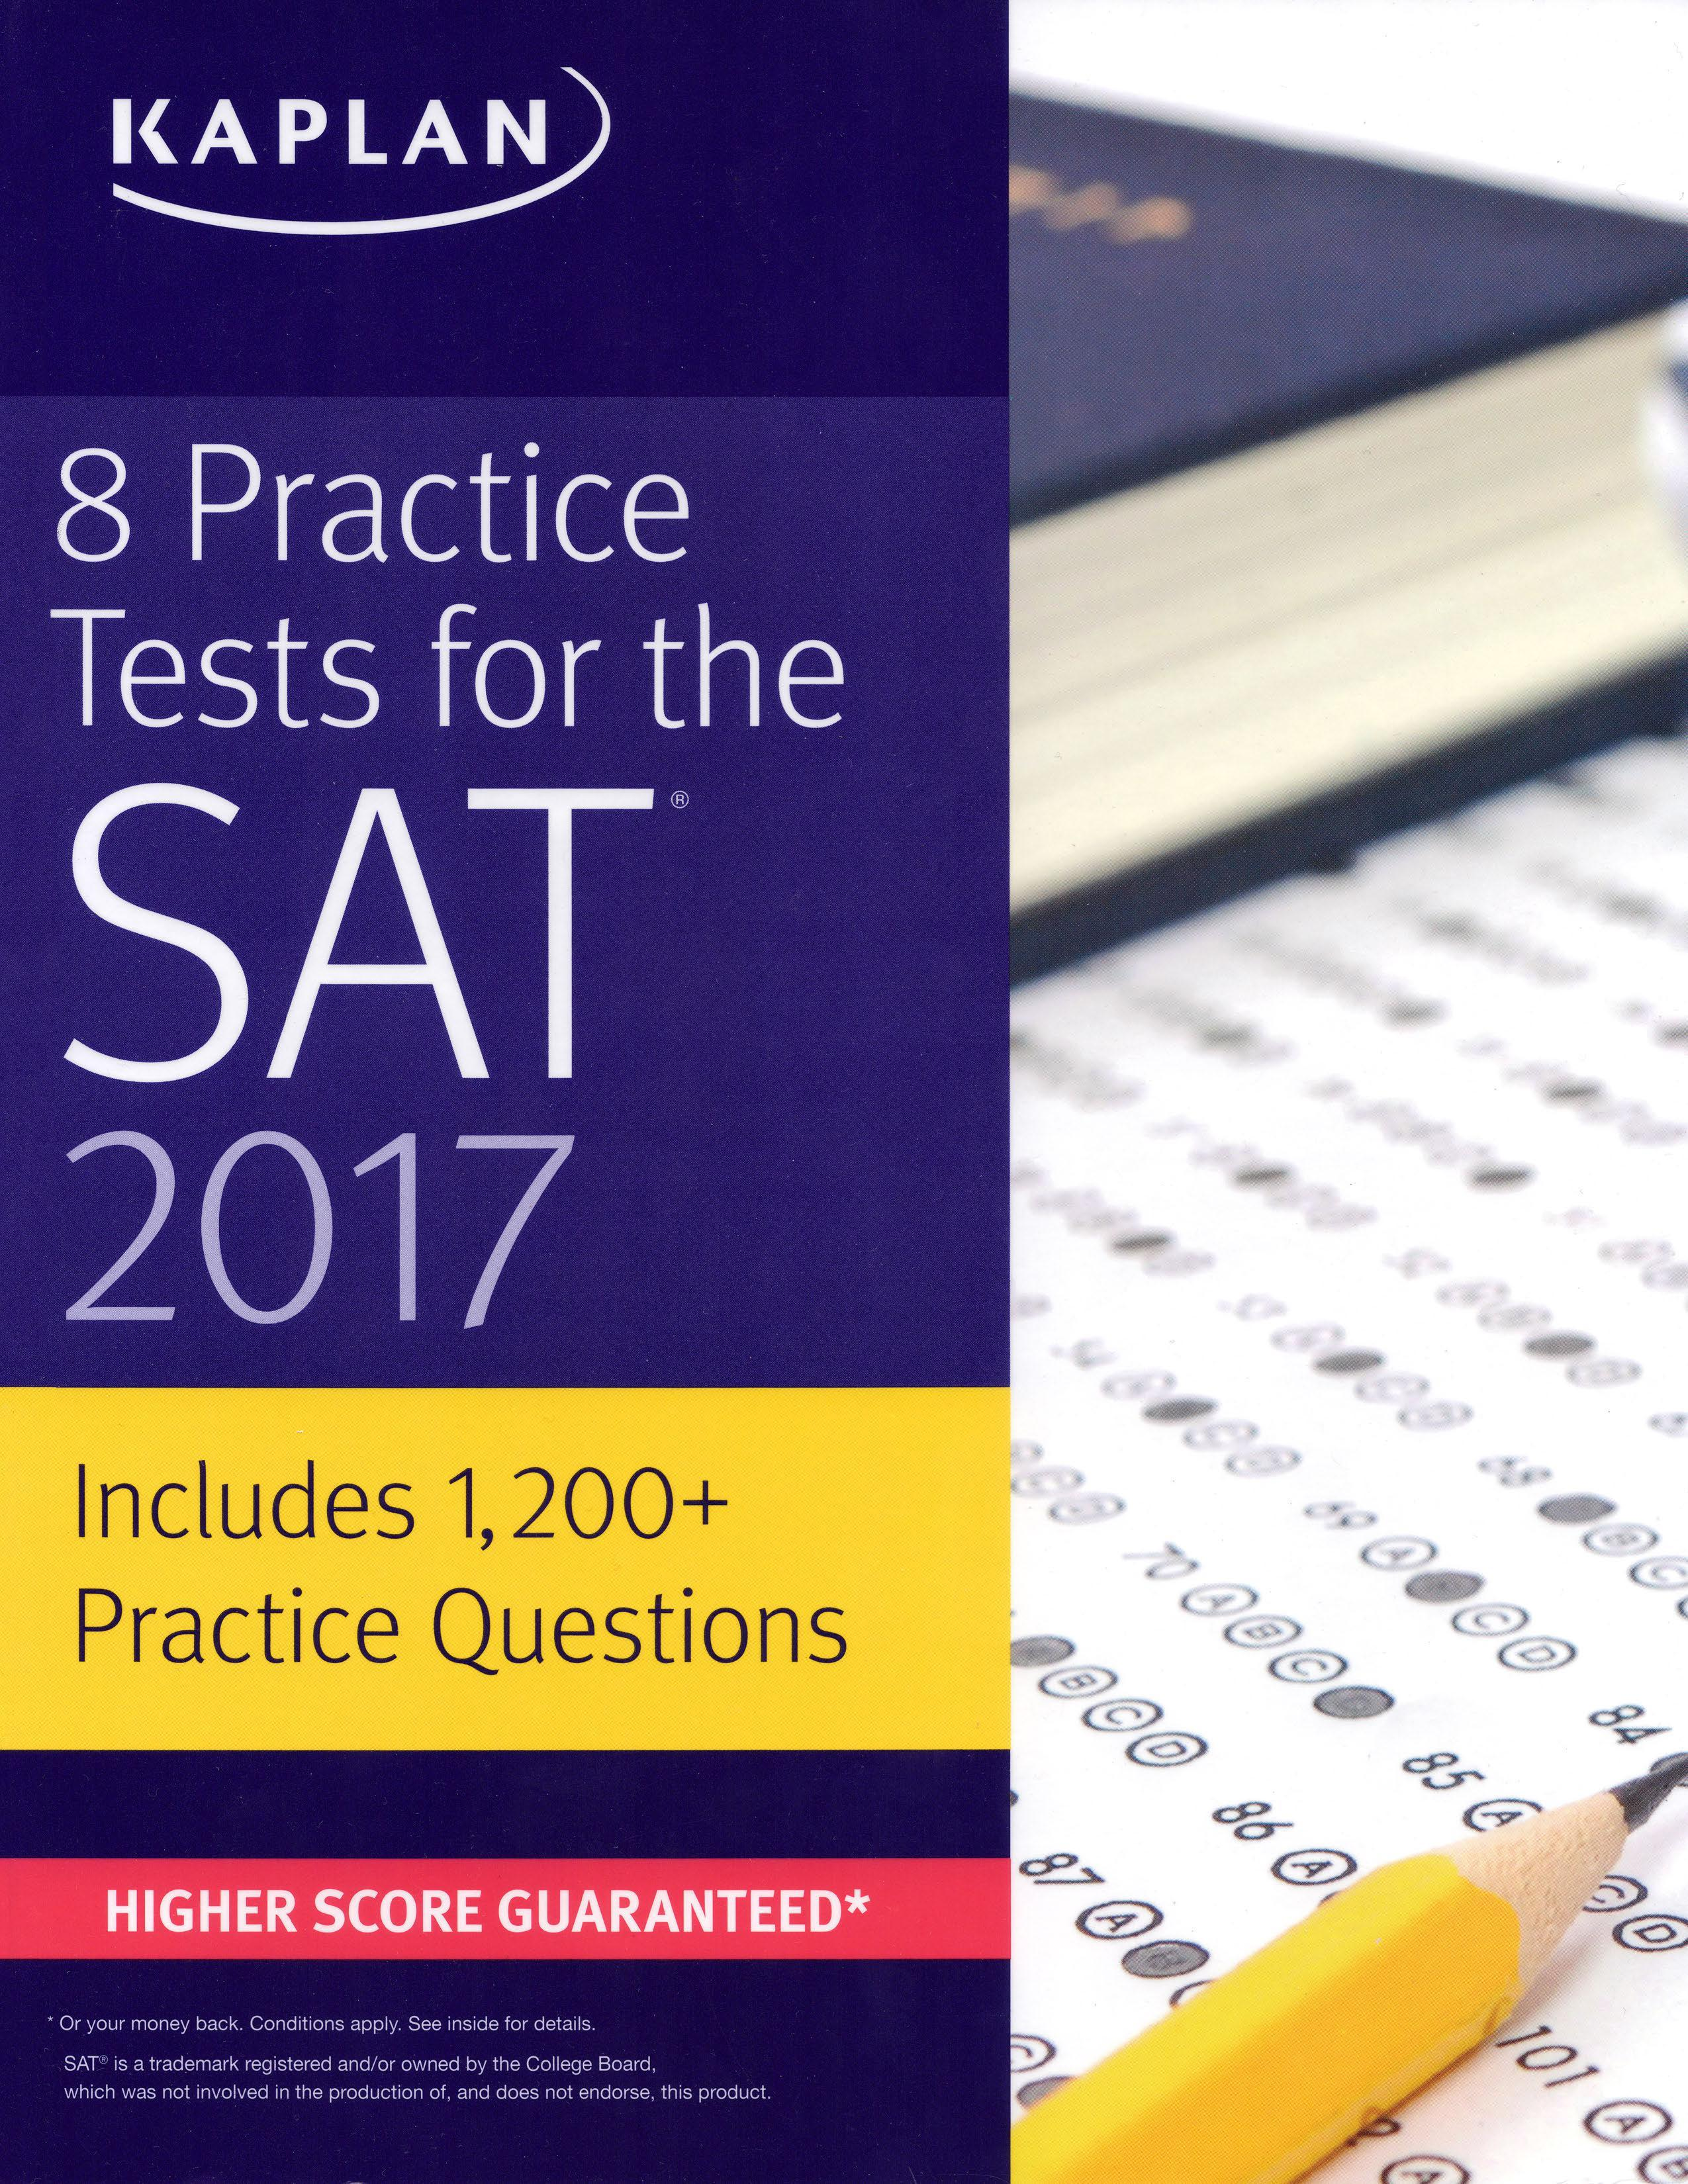 Mua 8 Practice Tests for the SAT 2017 by Kaplan